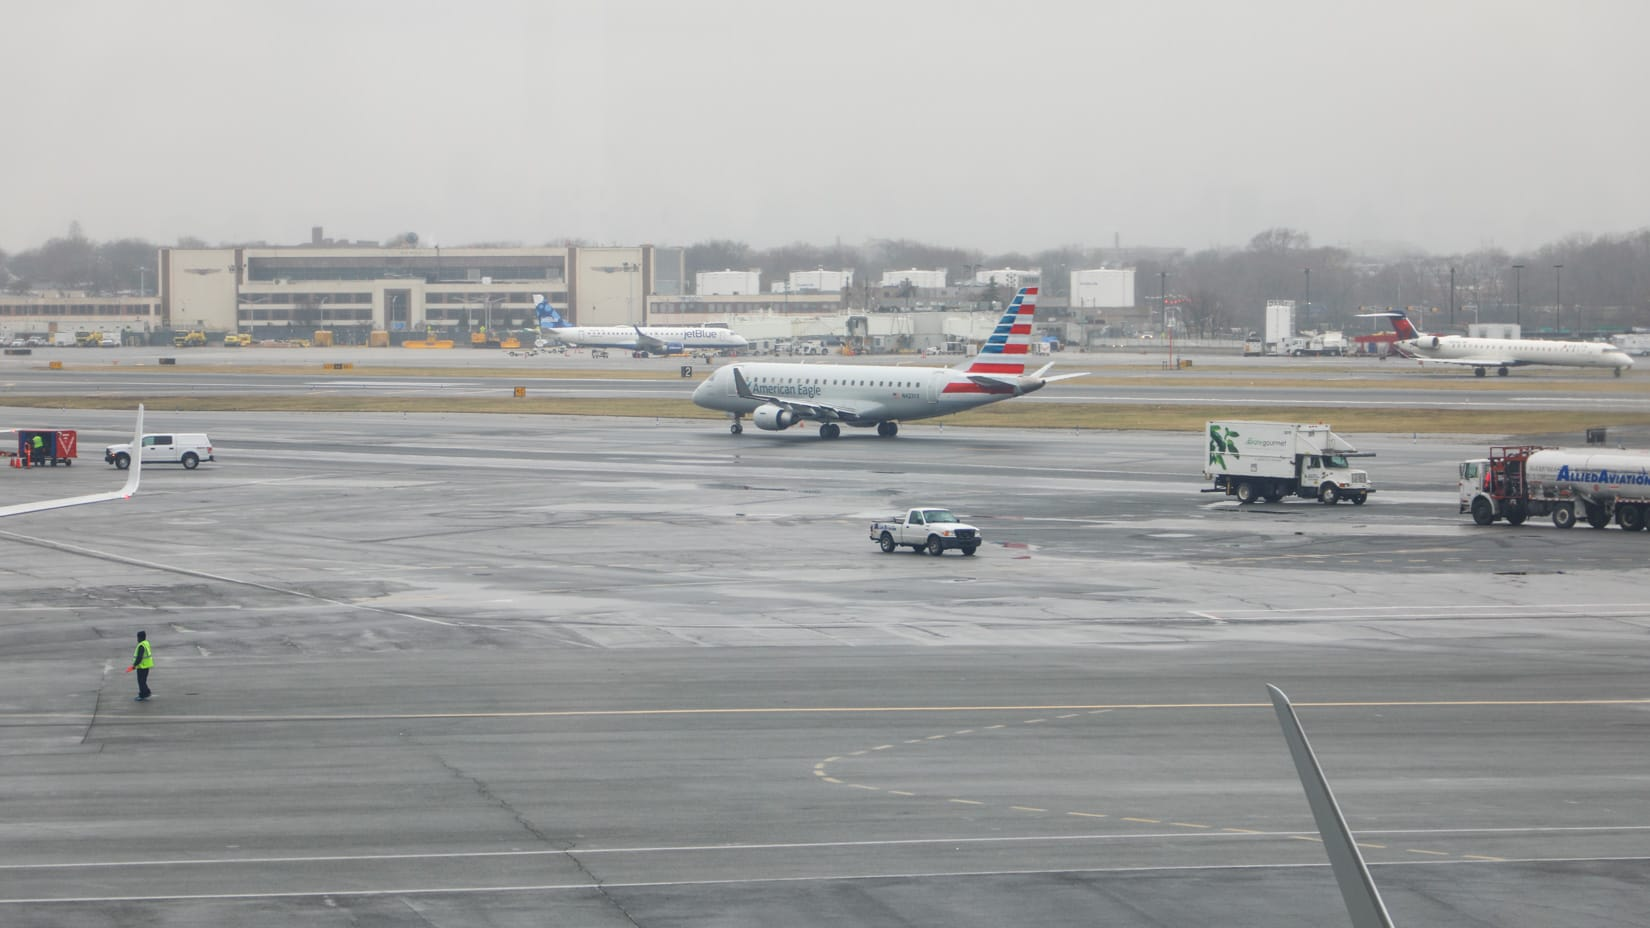 Plane on the LaGuardia airport runway